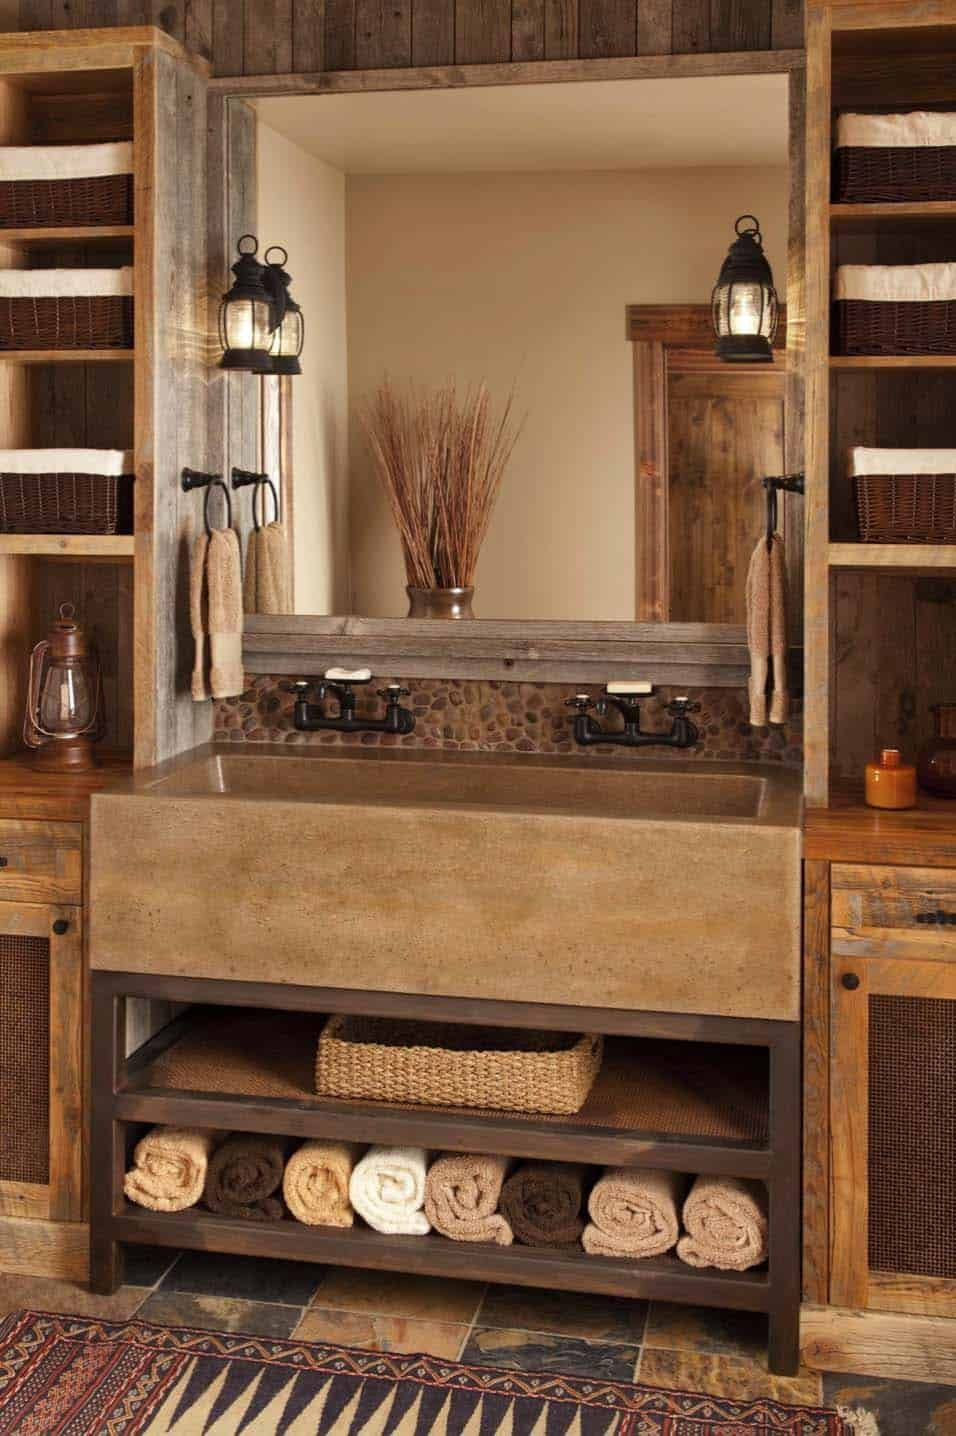 9 Charming And Natural Rustic Bathroom Design Ideas: Cozy Mountain Hideaway With Charming Modern-rustic Style